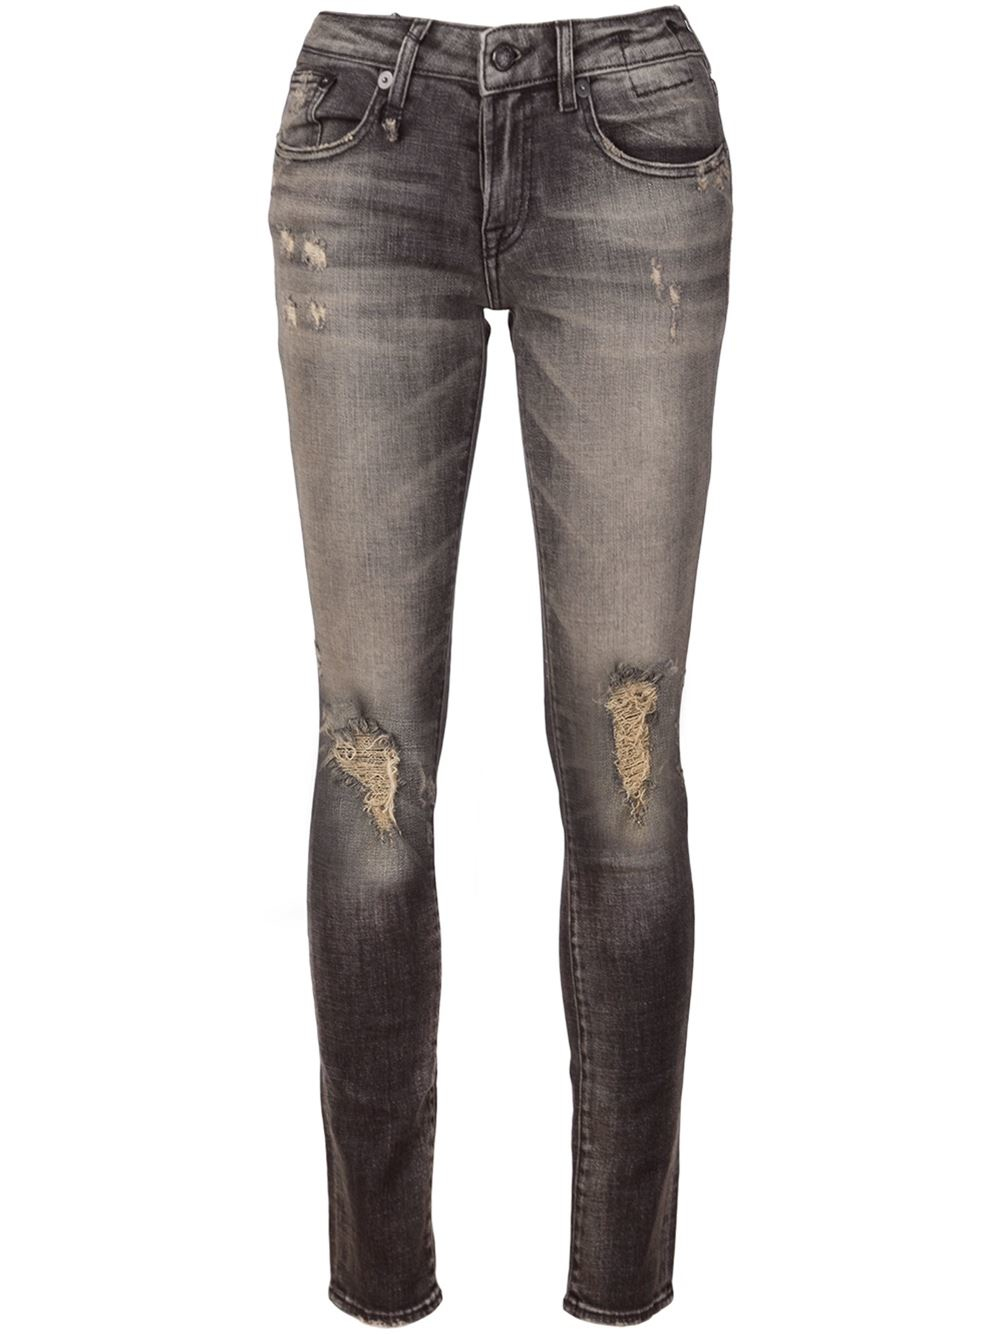 Buy New Womens Gray Jeans at Macy's. Shop Online for the Latest Designer Gray Jeans for Women at 440v.cf FREE SHIPPING AVAILABLE!